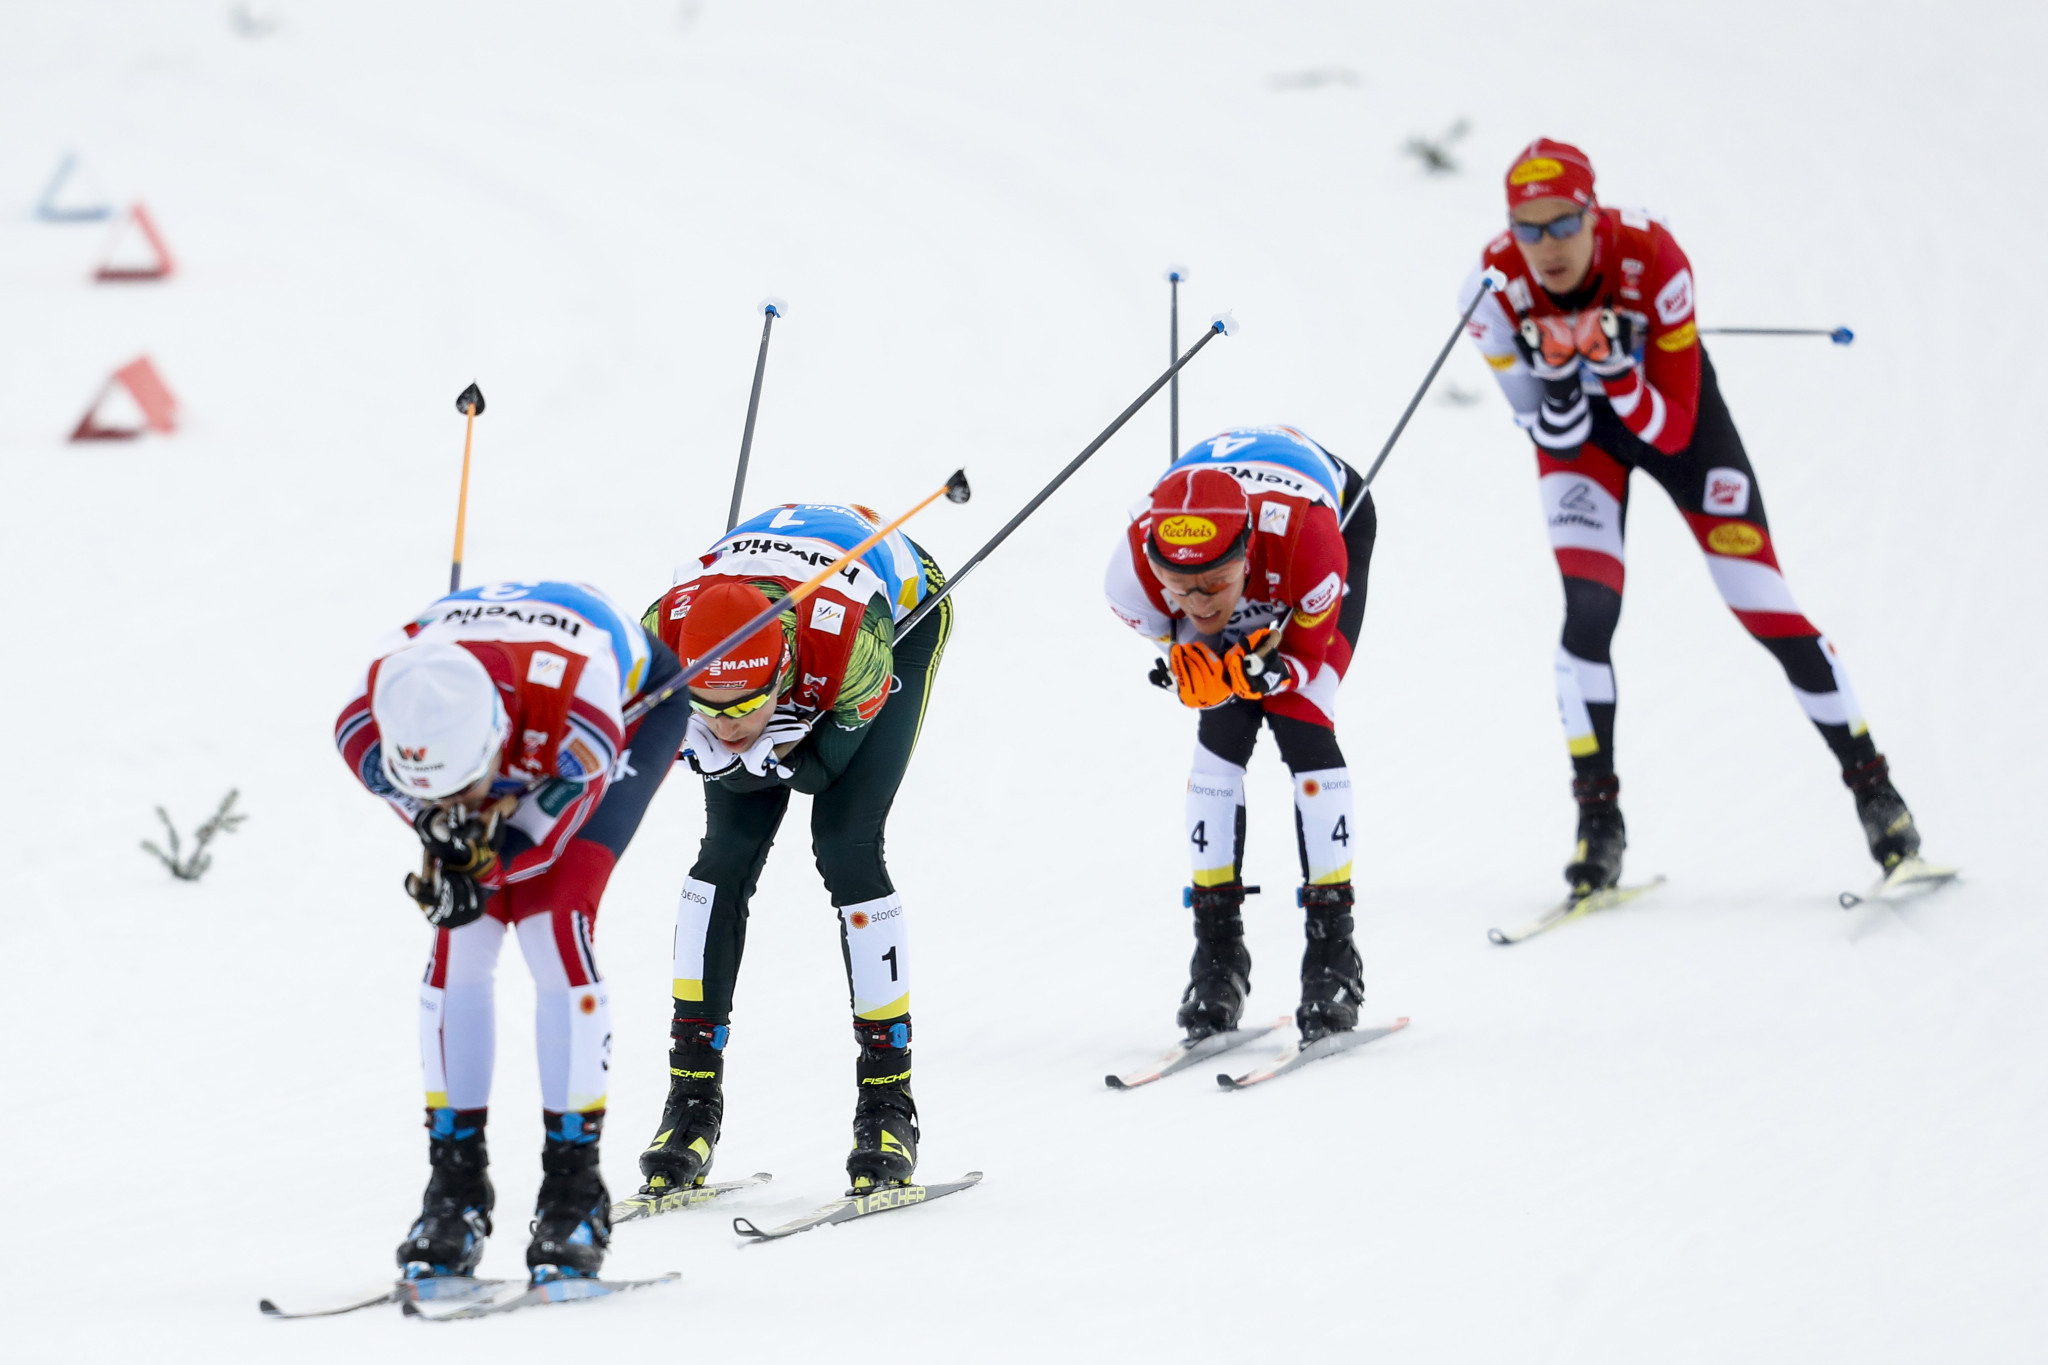 Frenzel's time in the final race was enough to give him his sixth Nordic combined world title ©Getty Images